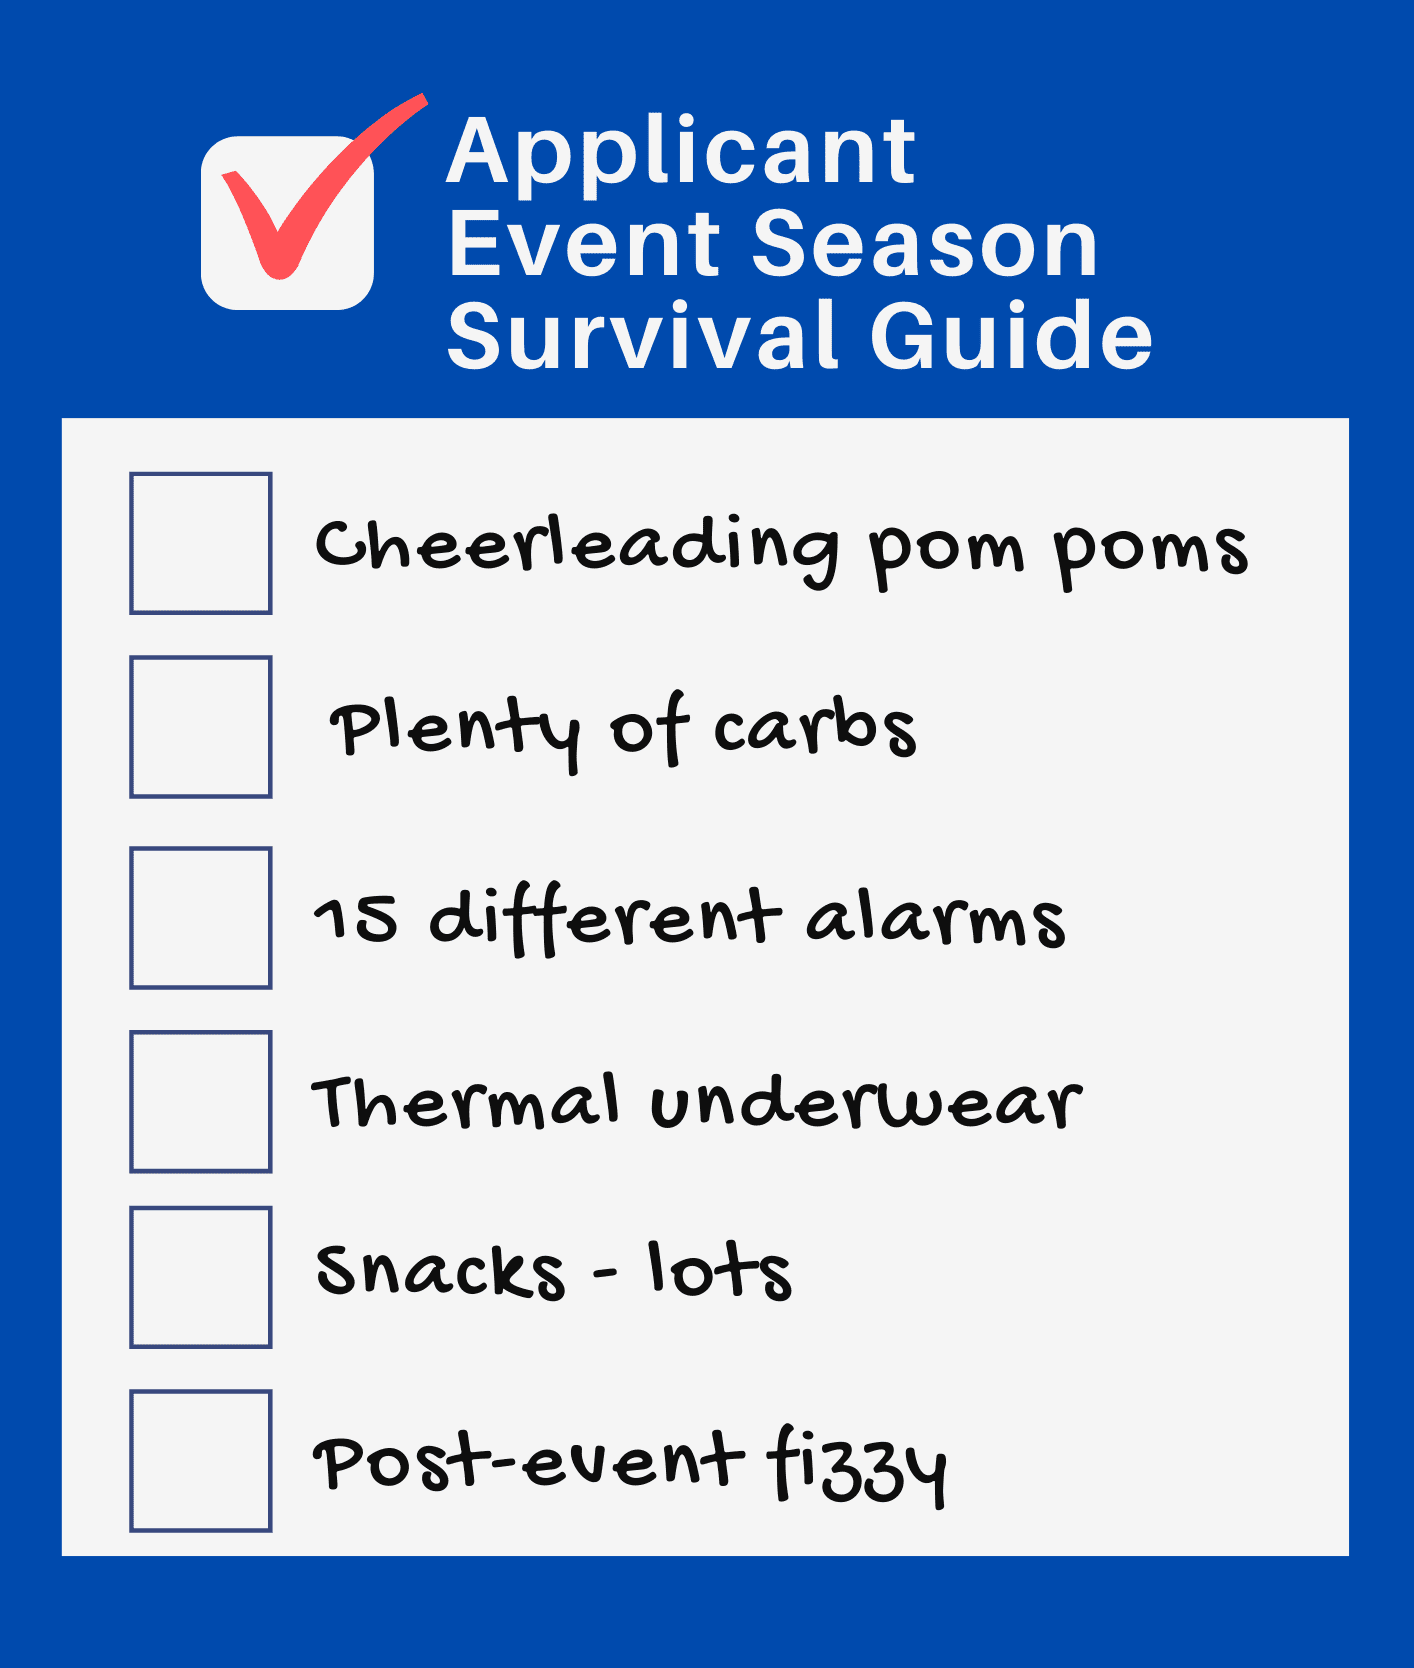 Surviving applicant event season